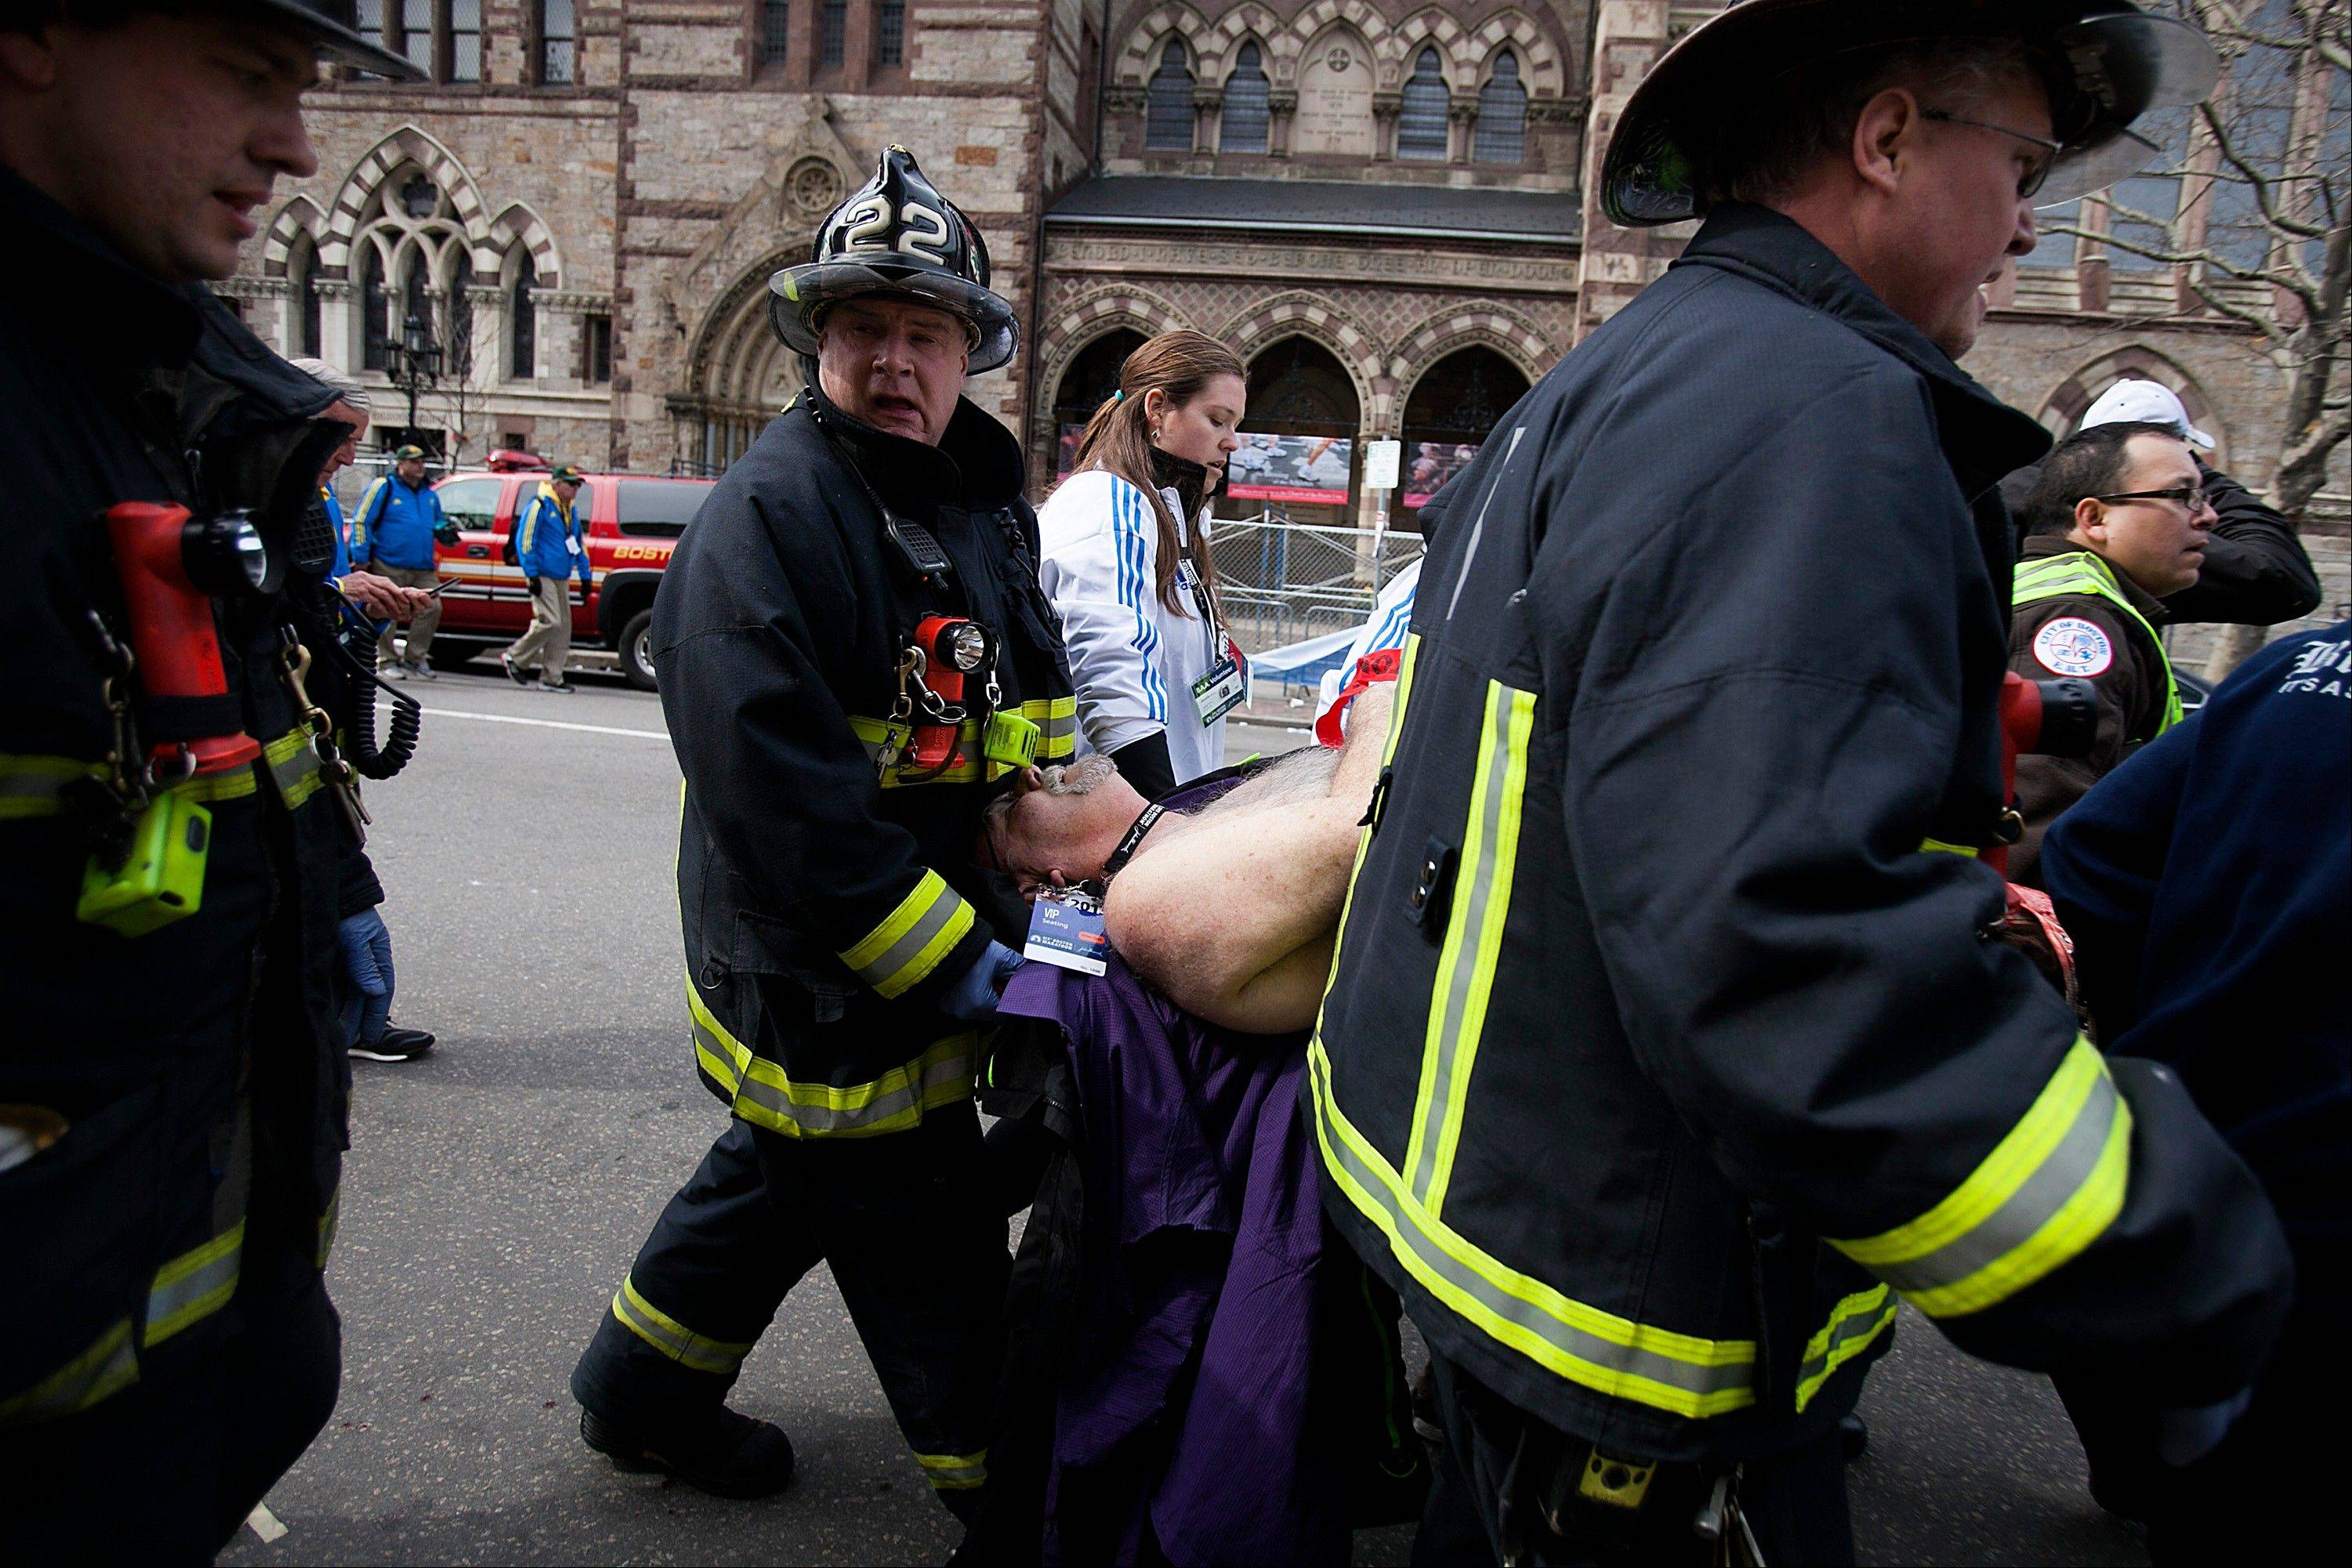 Firemen carry an injured person where two explosions occurred along the final stretch of the Boston Marathon on Boylston Street in Boston, Massachusetts, U.S., on Monday, April 15, 2013. Two powerful explosions rocked the finish line area of the Boston Marathon near Copley Square and police said many people were injured.